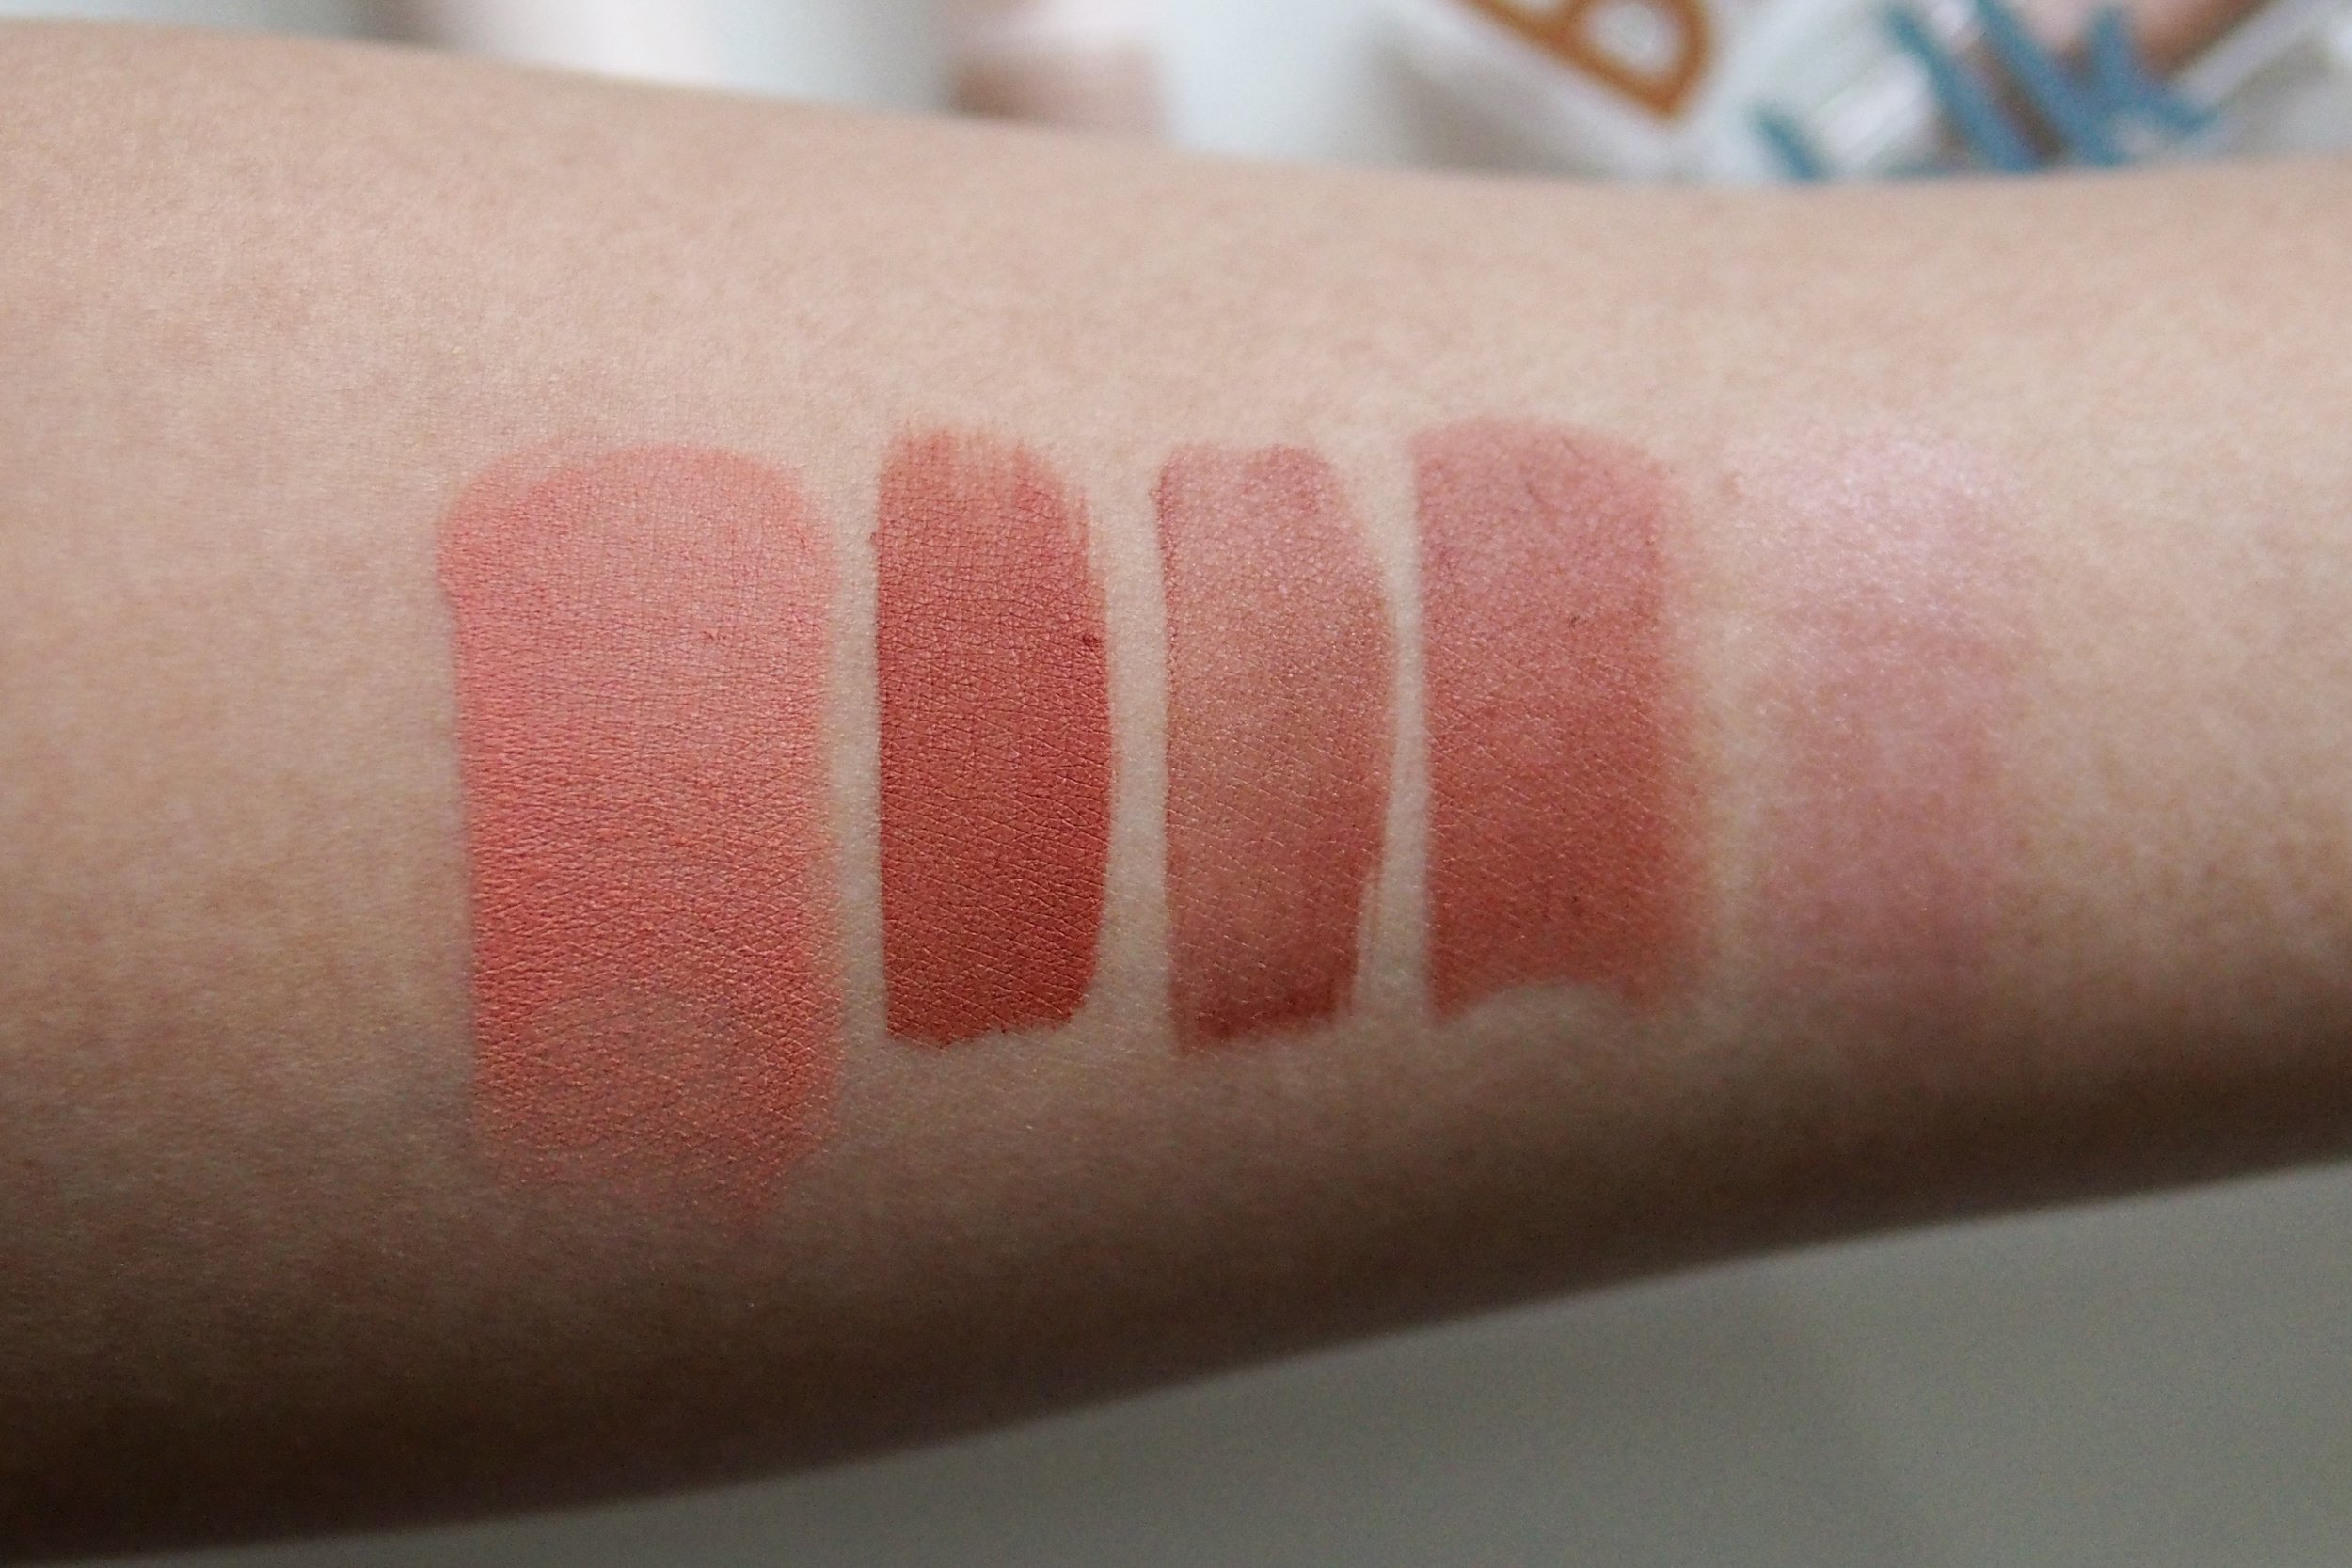 Swatches, from left: Multitasking Color Stick in Rosé, Universal Tint Duo Matte in Nutmeg, Universal Tint Duo Water in Nutmeg, All Day Lip in Latte, Color Adapting Moisture Balm